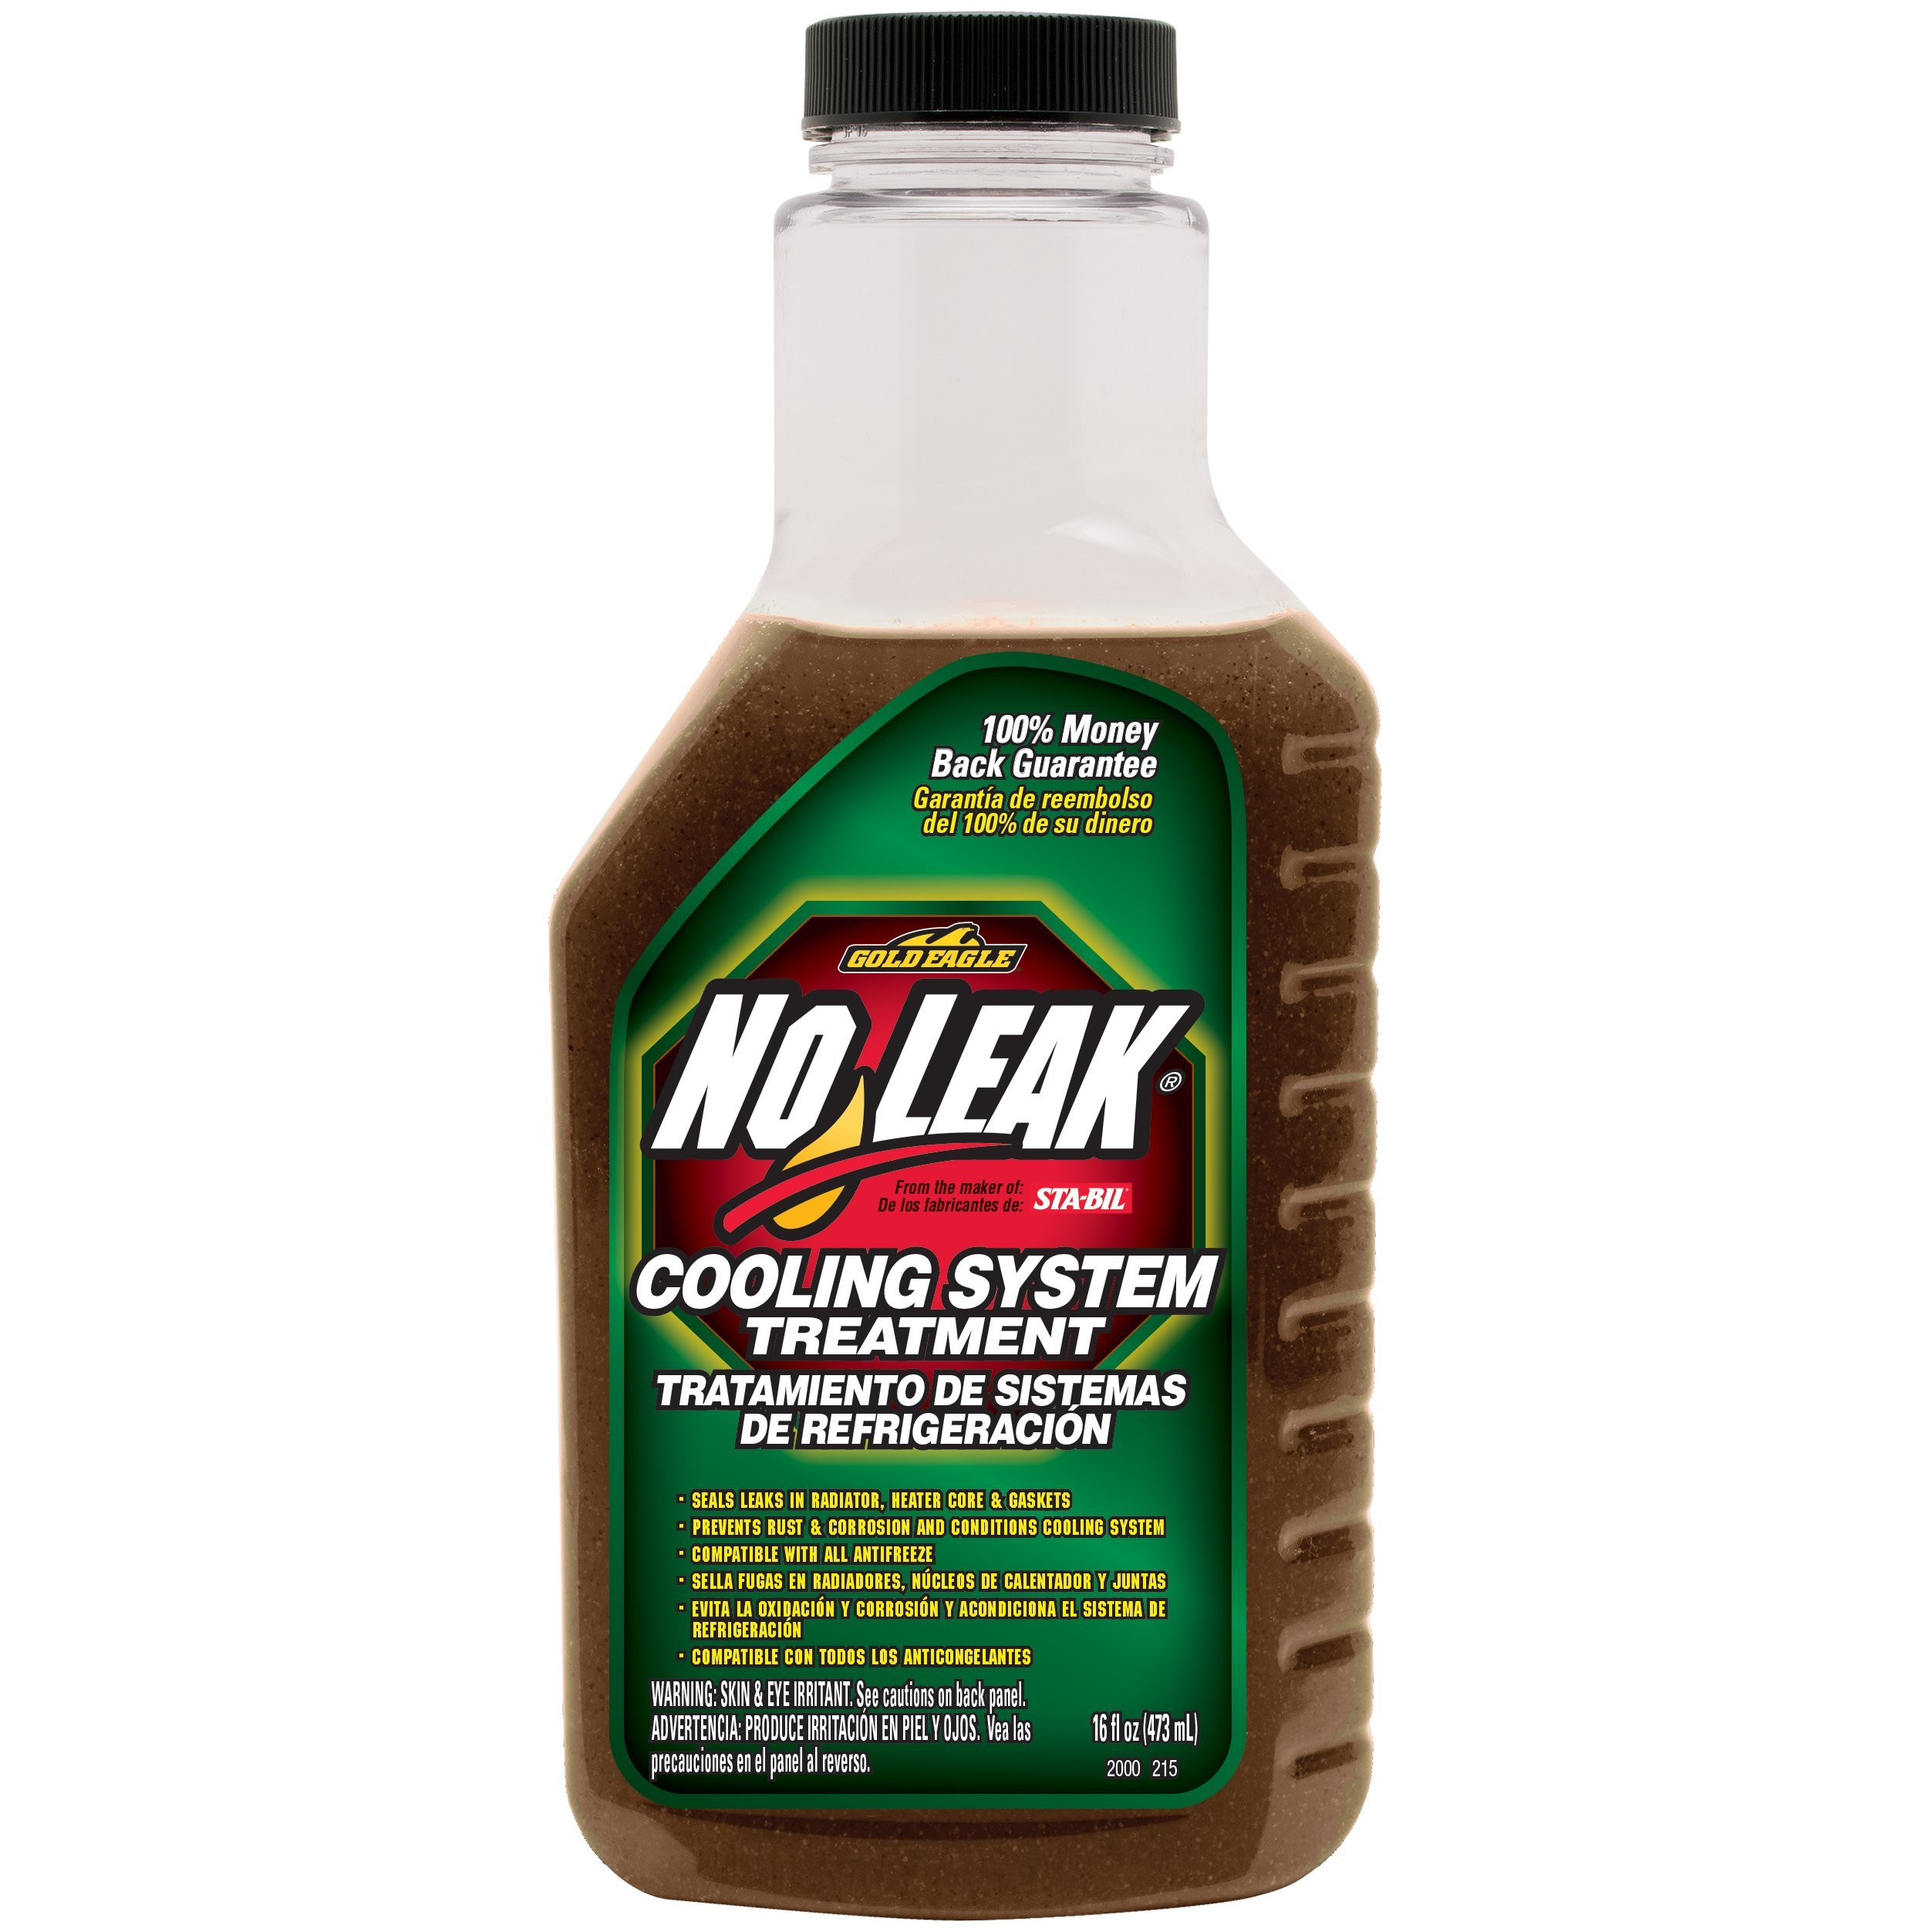 NO LEAK 2000-6PK Cooling System Treatment, (Pack of 6) by NO LEAK